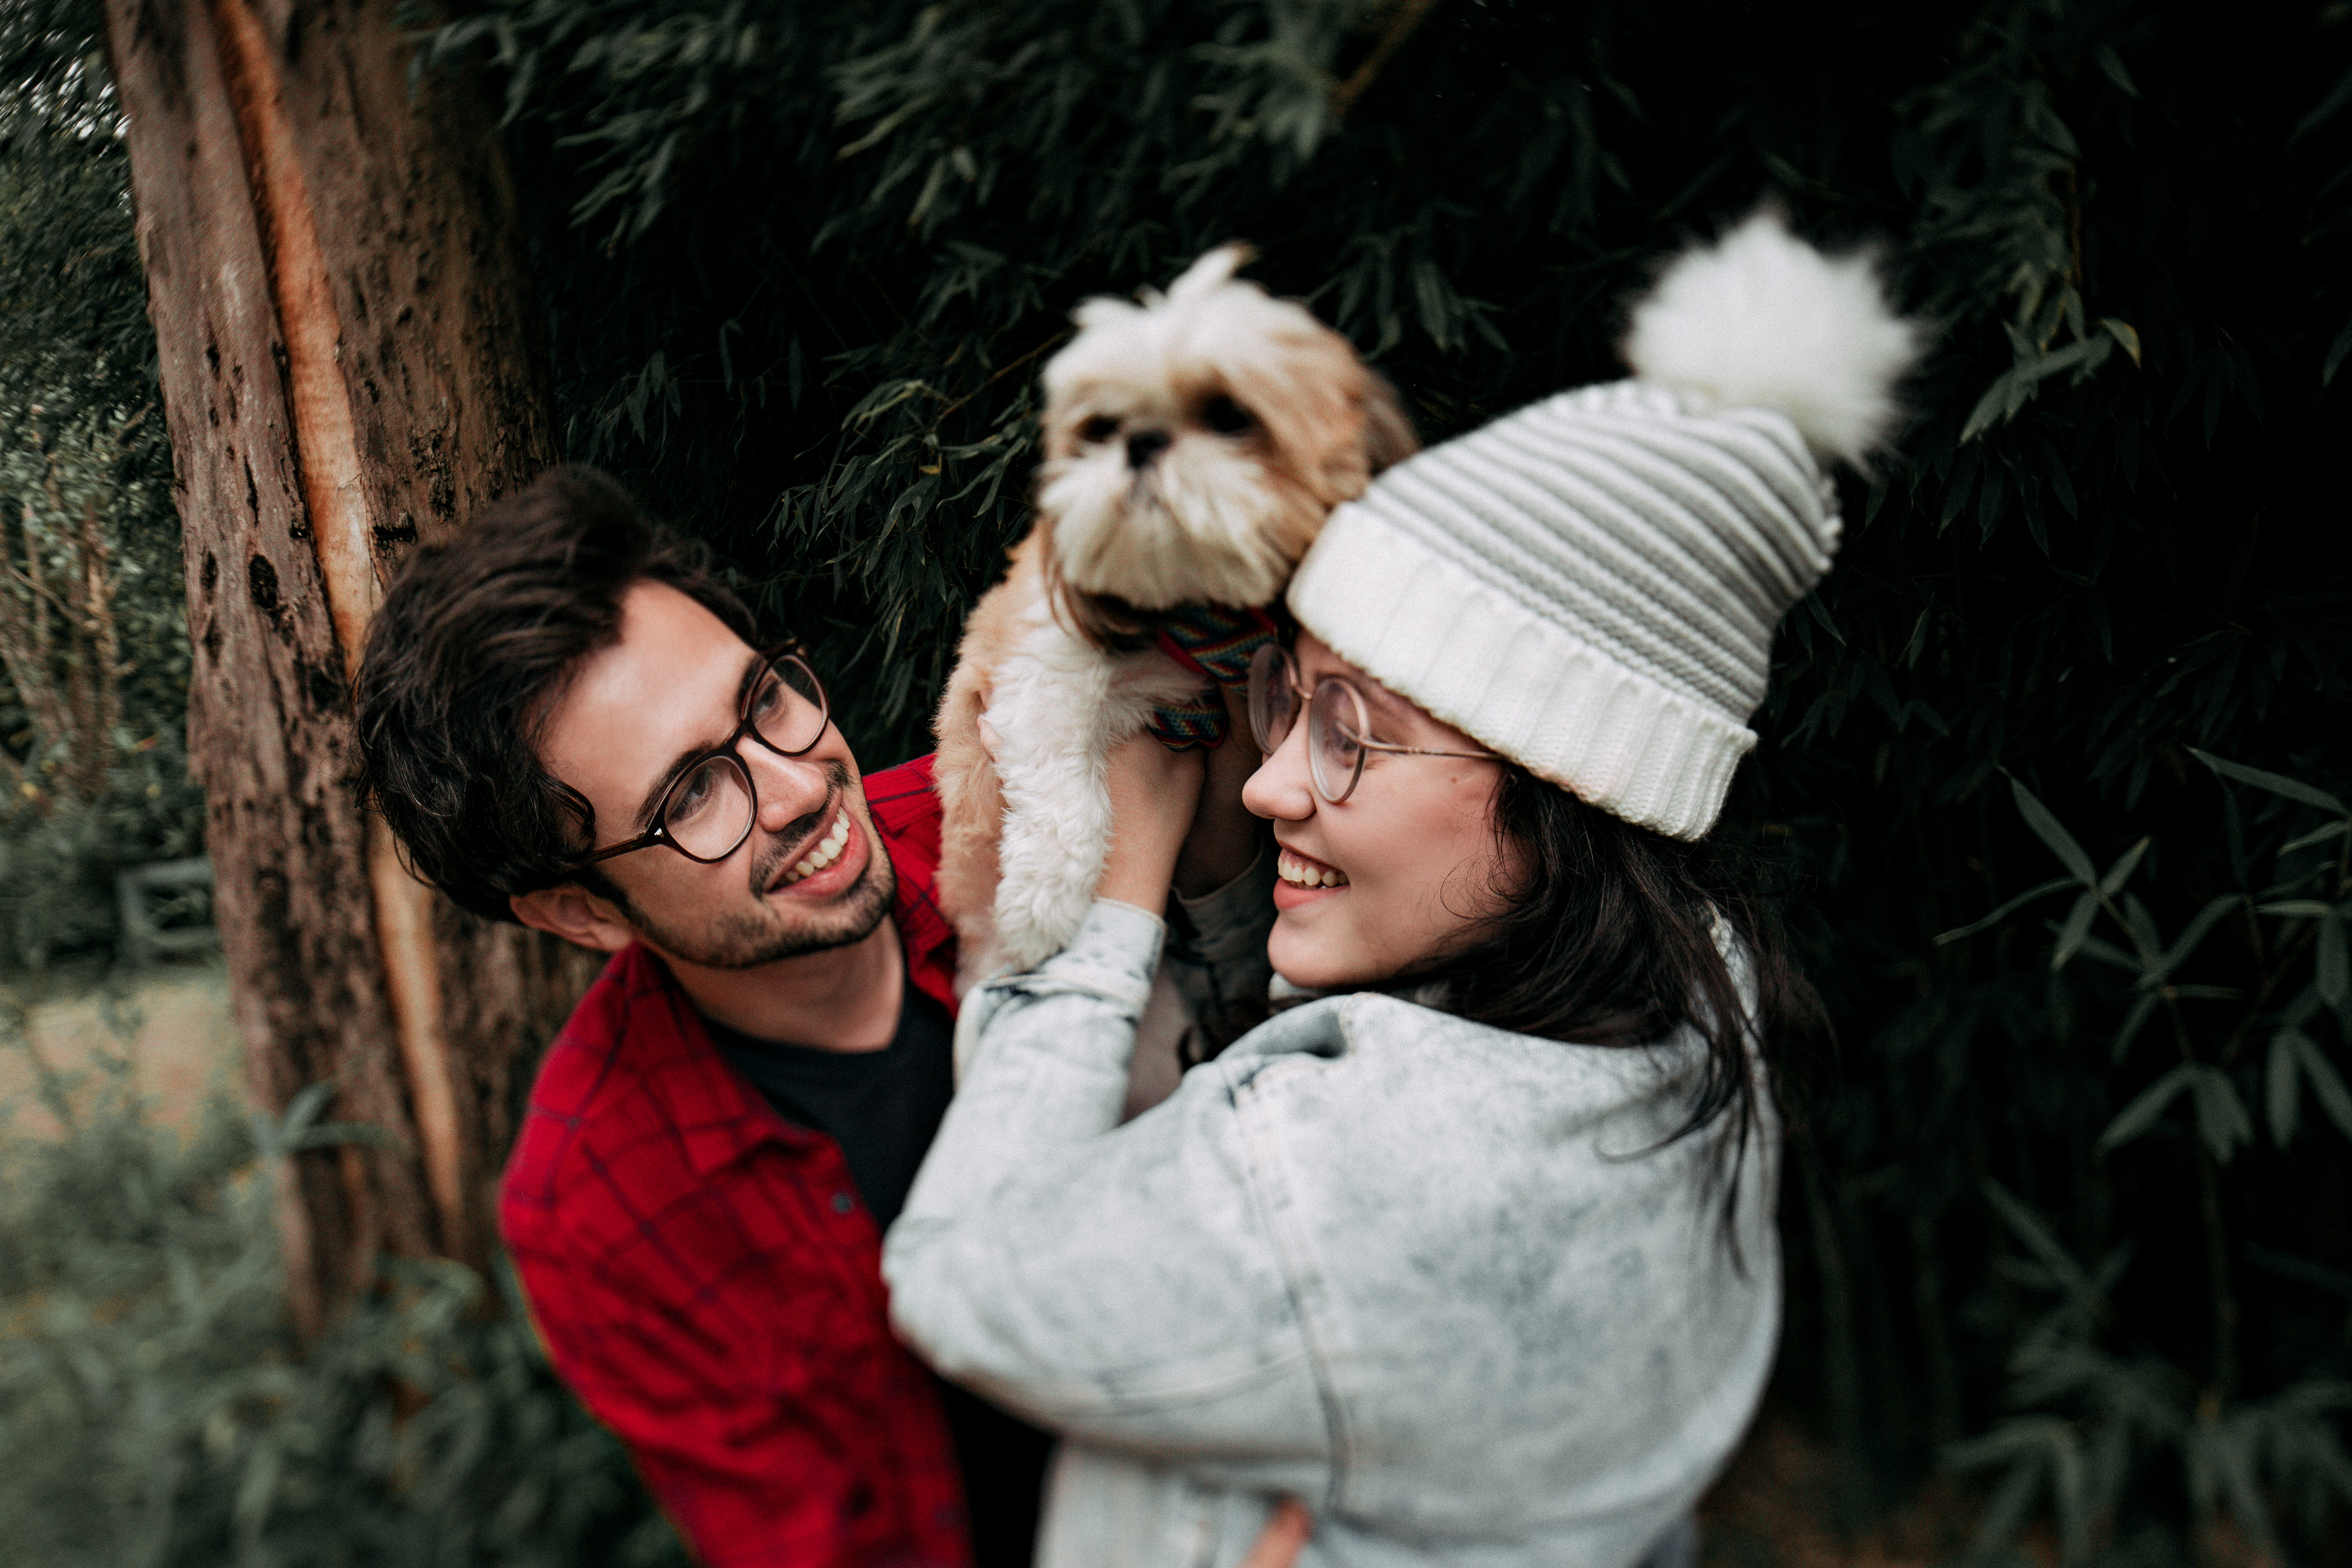 A man and a woman in winter clothes smile while they hold a fluffy white dog